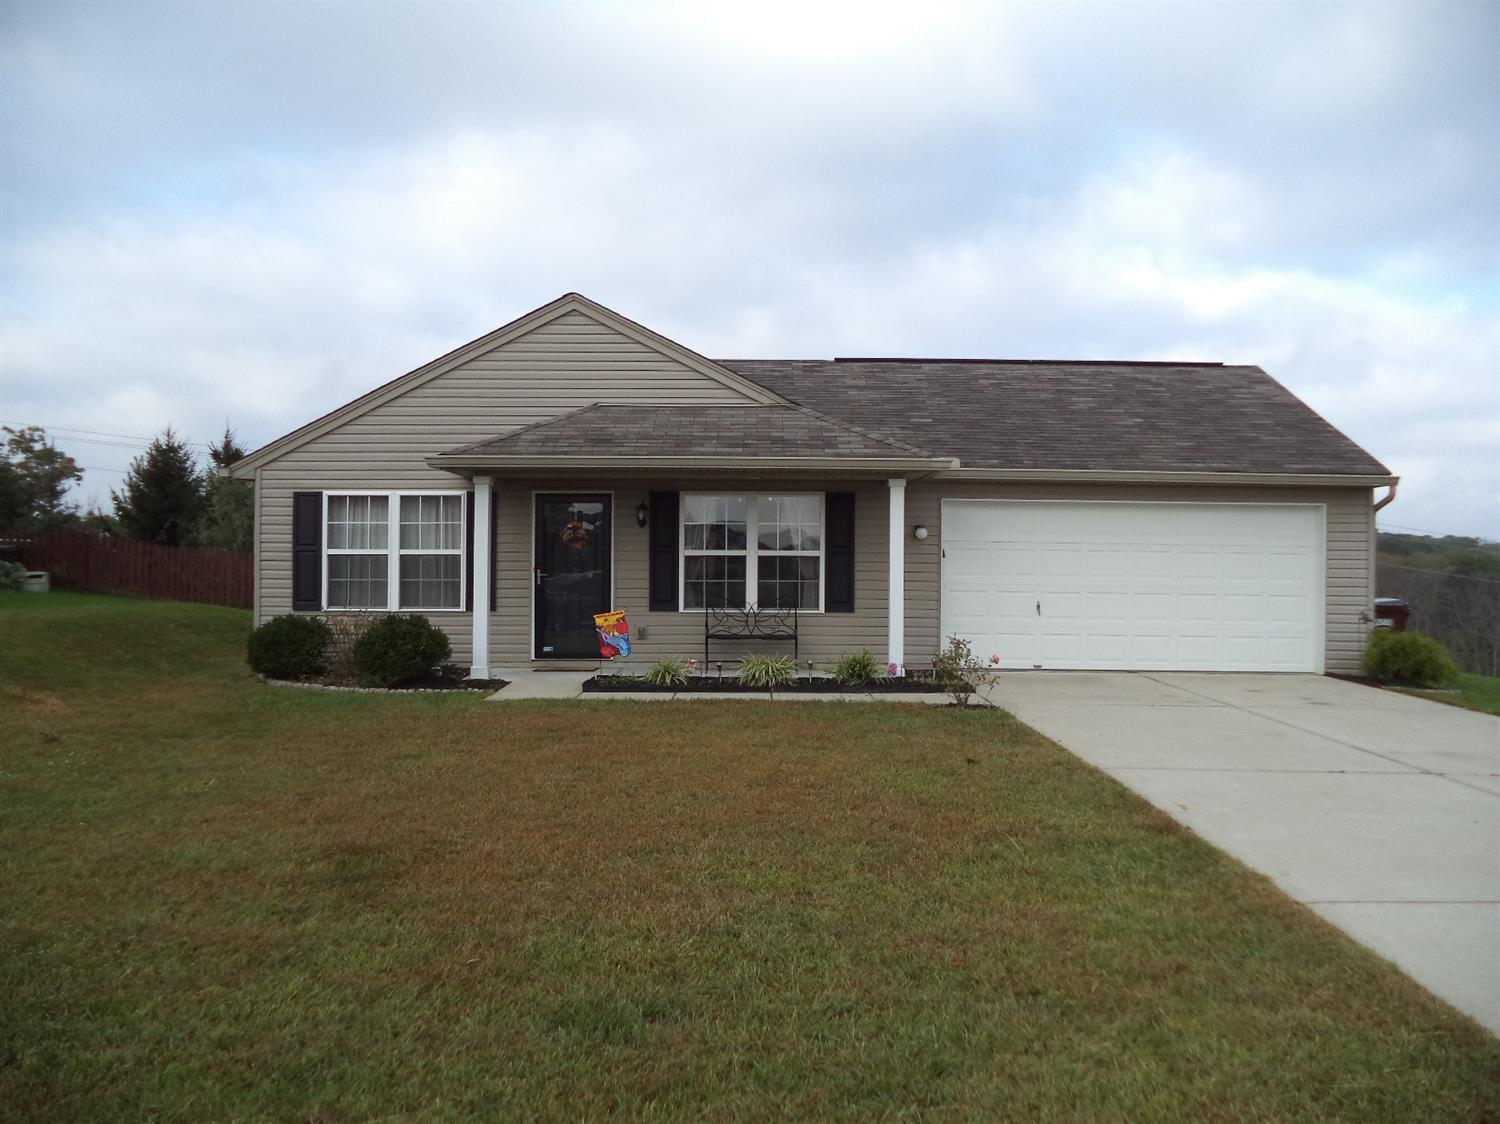 Photo 1 for 10355 Canberra Dr Independence, KY 41051